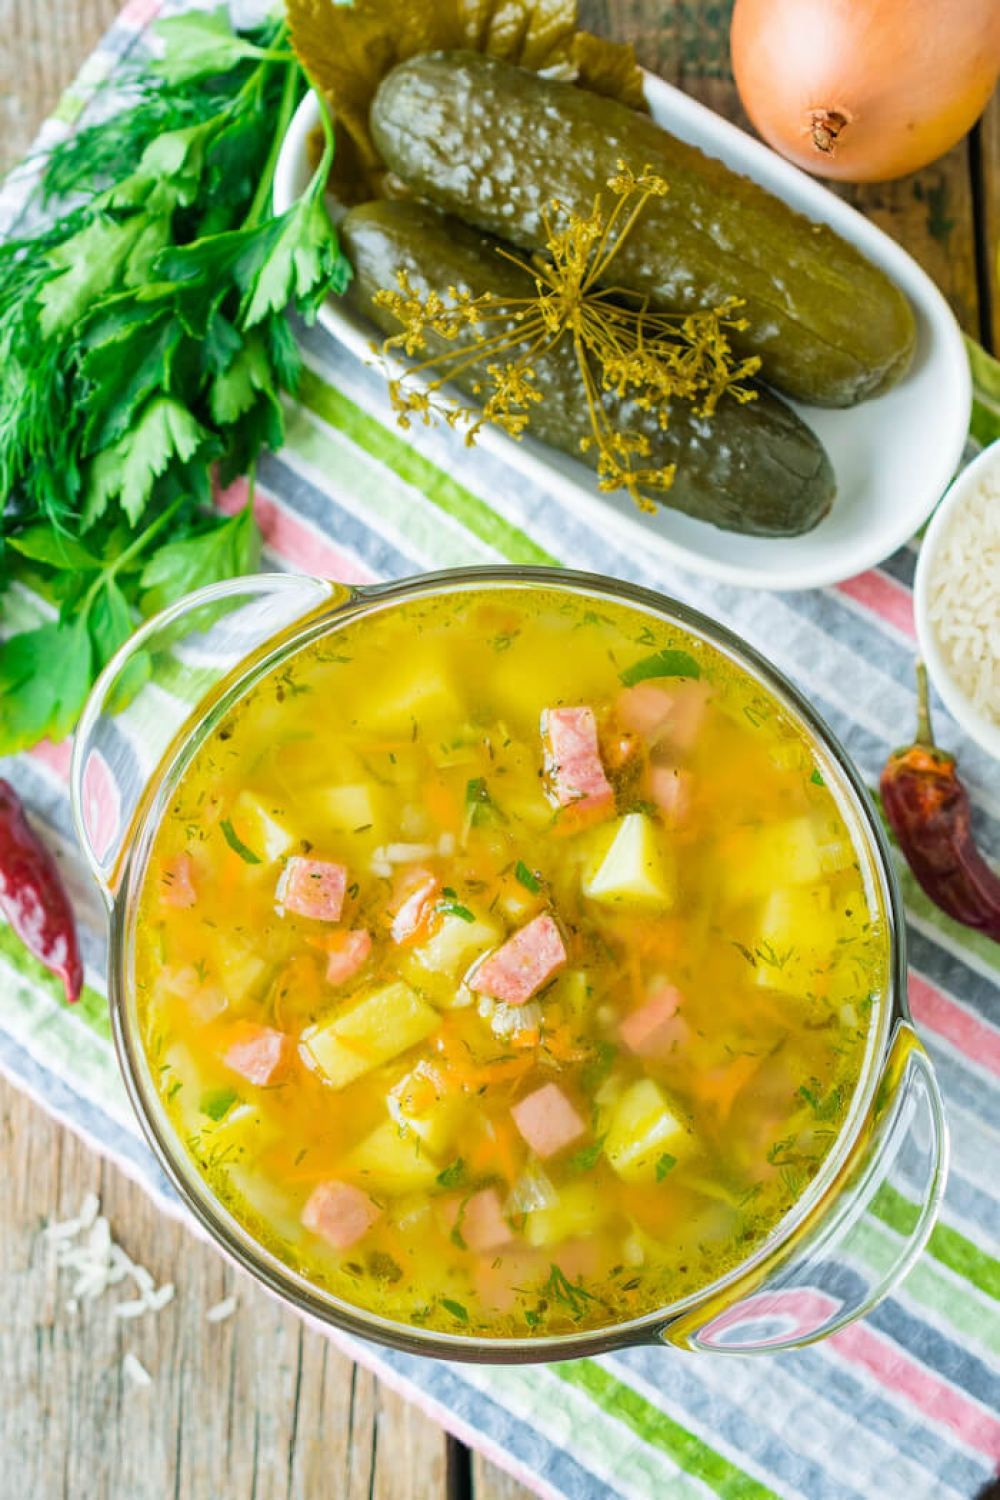 Smoked Sausage and Pickled Cucumbers Soup